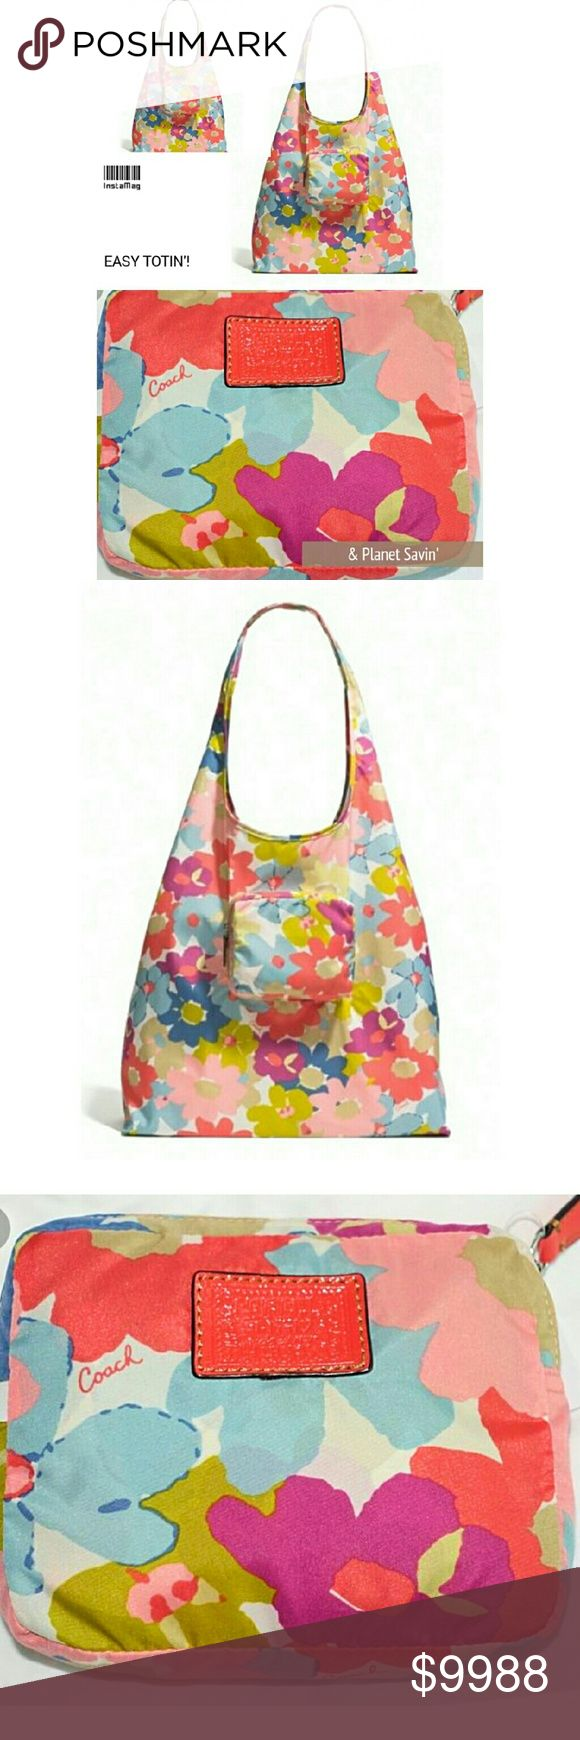 New! Coach Peyton Floral Shopper Folding Tote New w/o tags and never used. Permanent nylon, dual handle shopping tote! Discontinued pattern, measures approx. 15in. x 15in. w/self handle drop of approx. 10.5in  1 outside zip pocket when in use. Tote folds & zips into the approx. 8in. x 3.5in. pocket for extremely cool storage. Save our planet and shop in major style w/your unique & portable tote! Coach #60255 Bundle w/ the matching mini umbrella to complete your gear<Ask for 20% off discount…